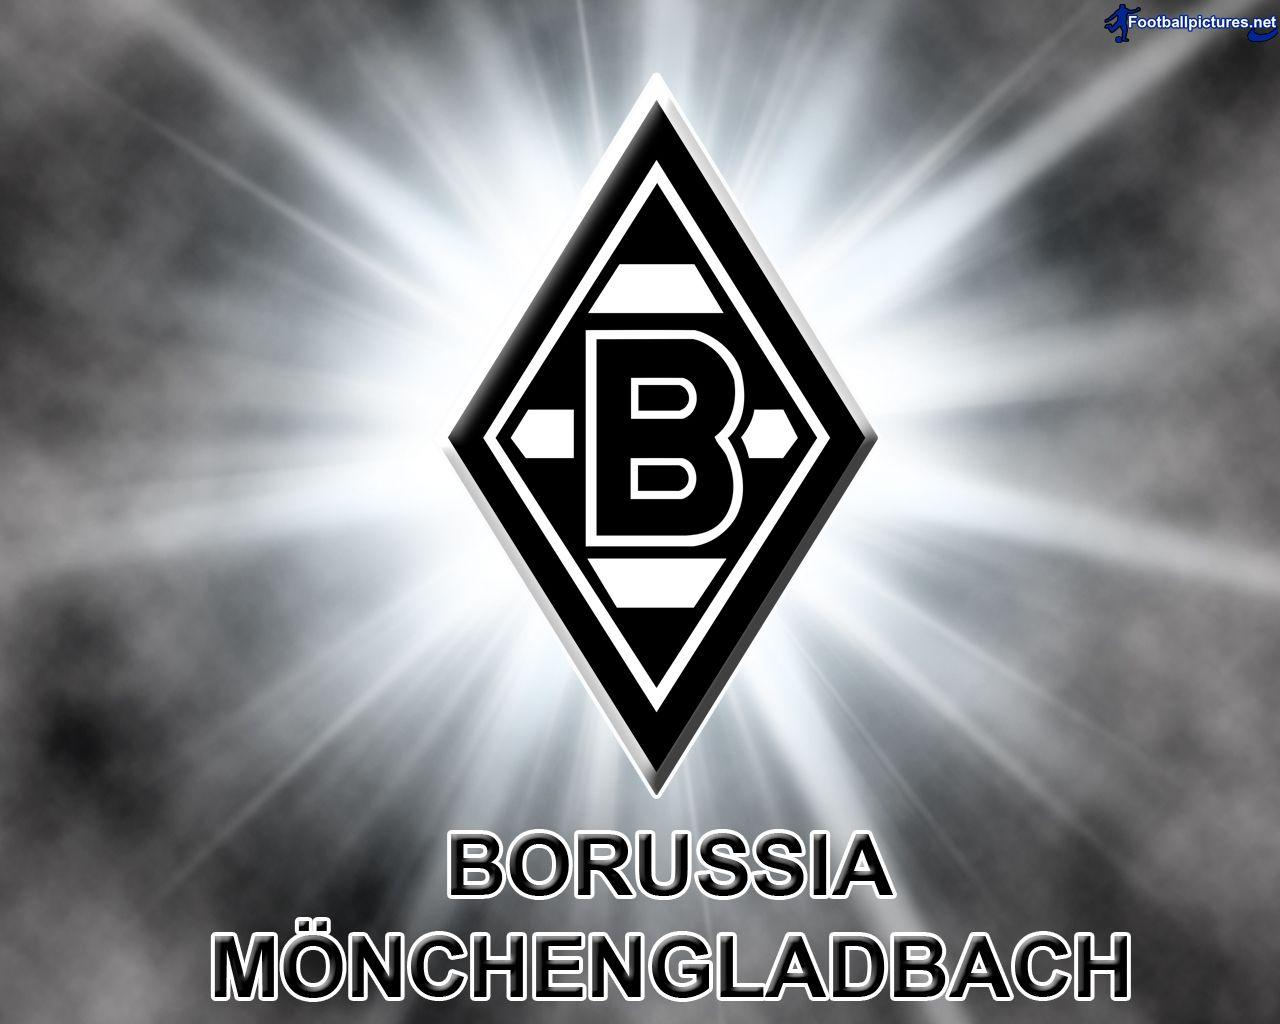 Borussia Monchengladbach pictures, Football Wallpapers and Photos ...